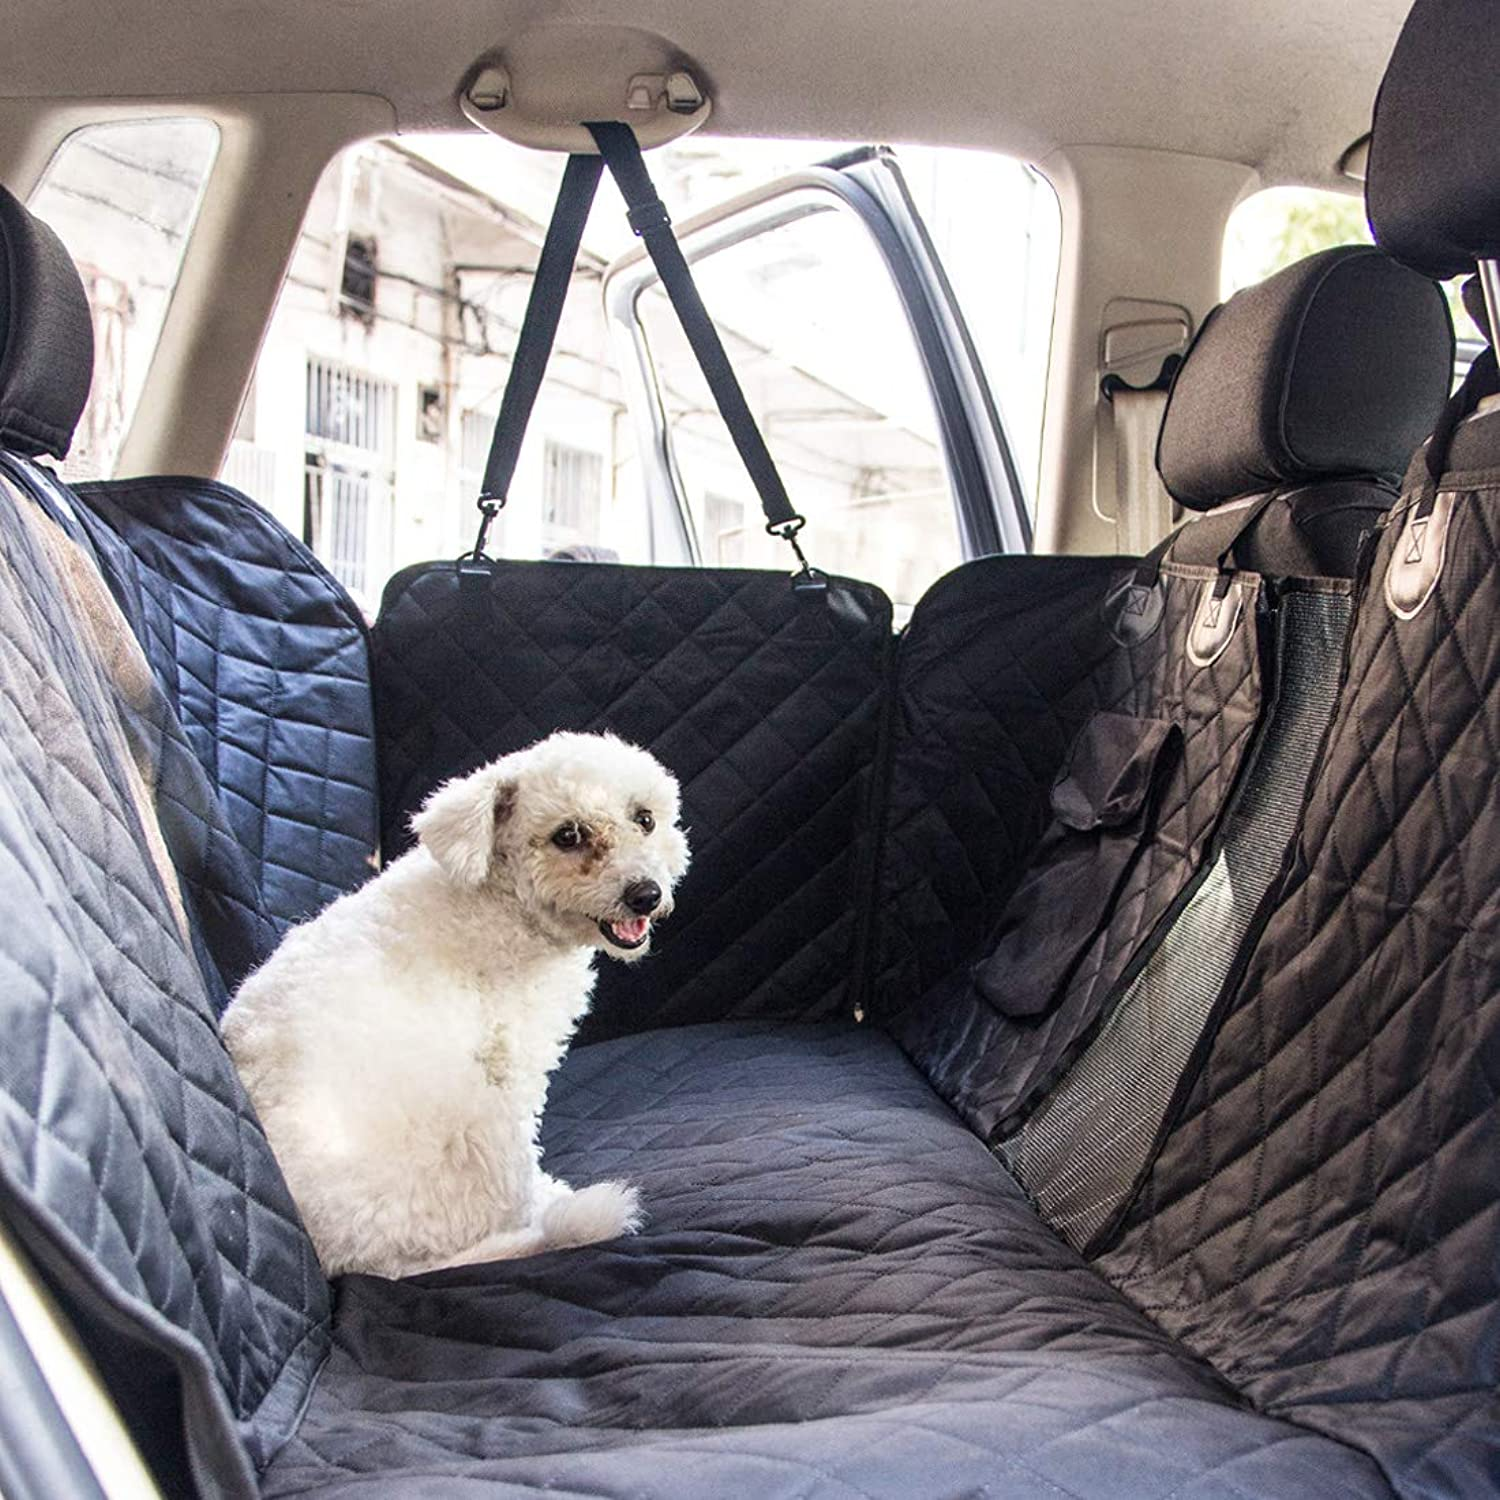 Rorian Dog Seat Cover Car Seat Cover for Pets Pet Seat Cover Hammock 600D Heavy Duty Scratch Proof Nonslip Durable Soft Pet Back Seat Covers for Cars Trucks and SUVs (Regular)